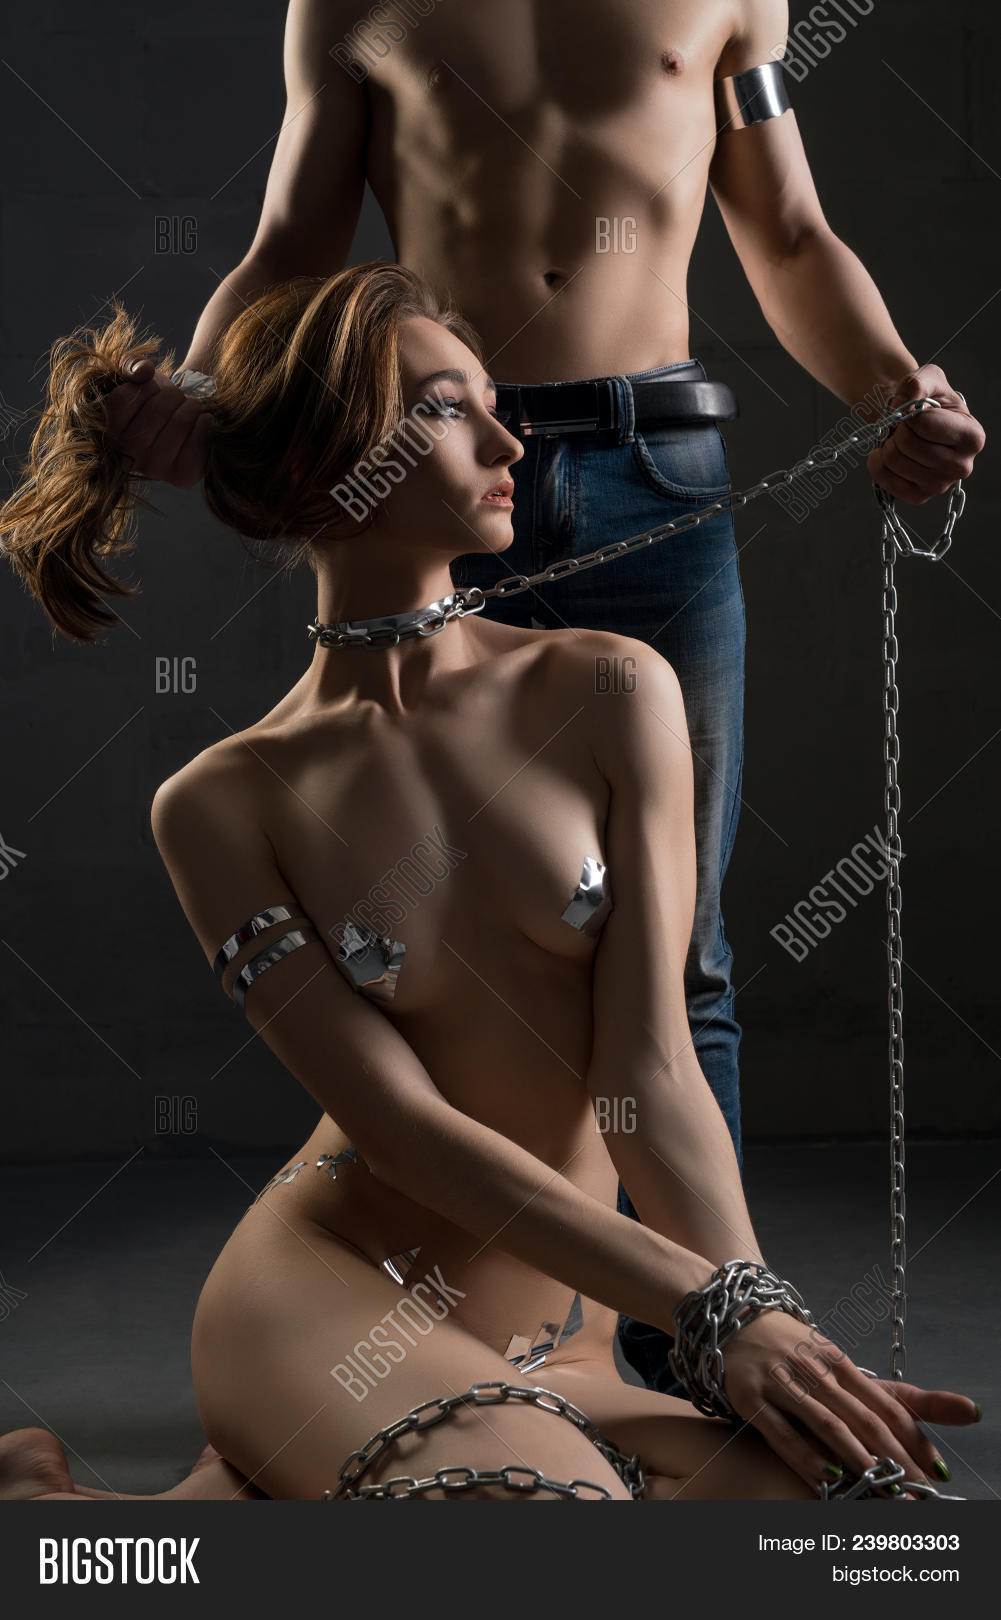 Naked woman on leash